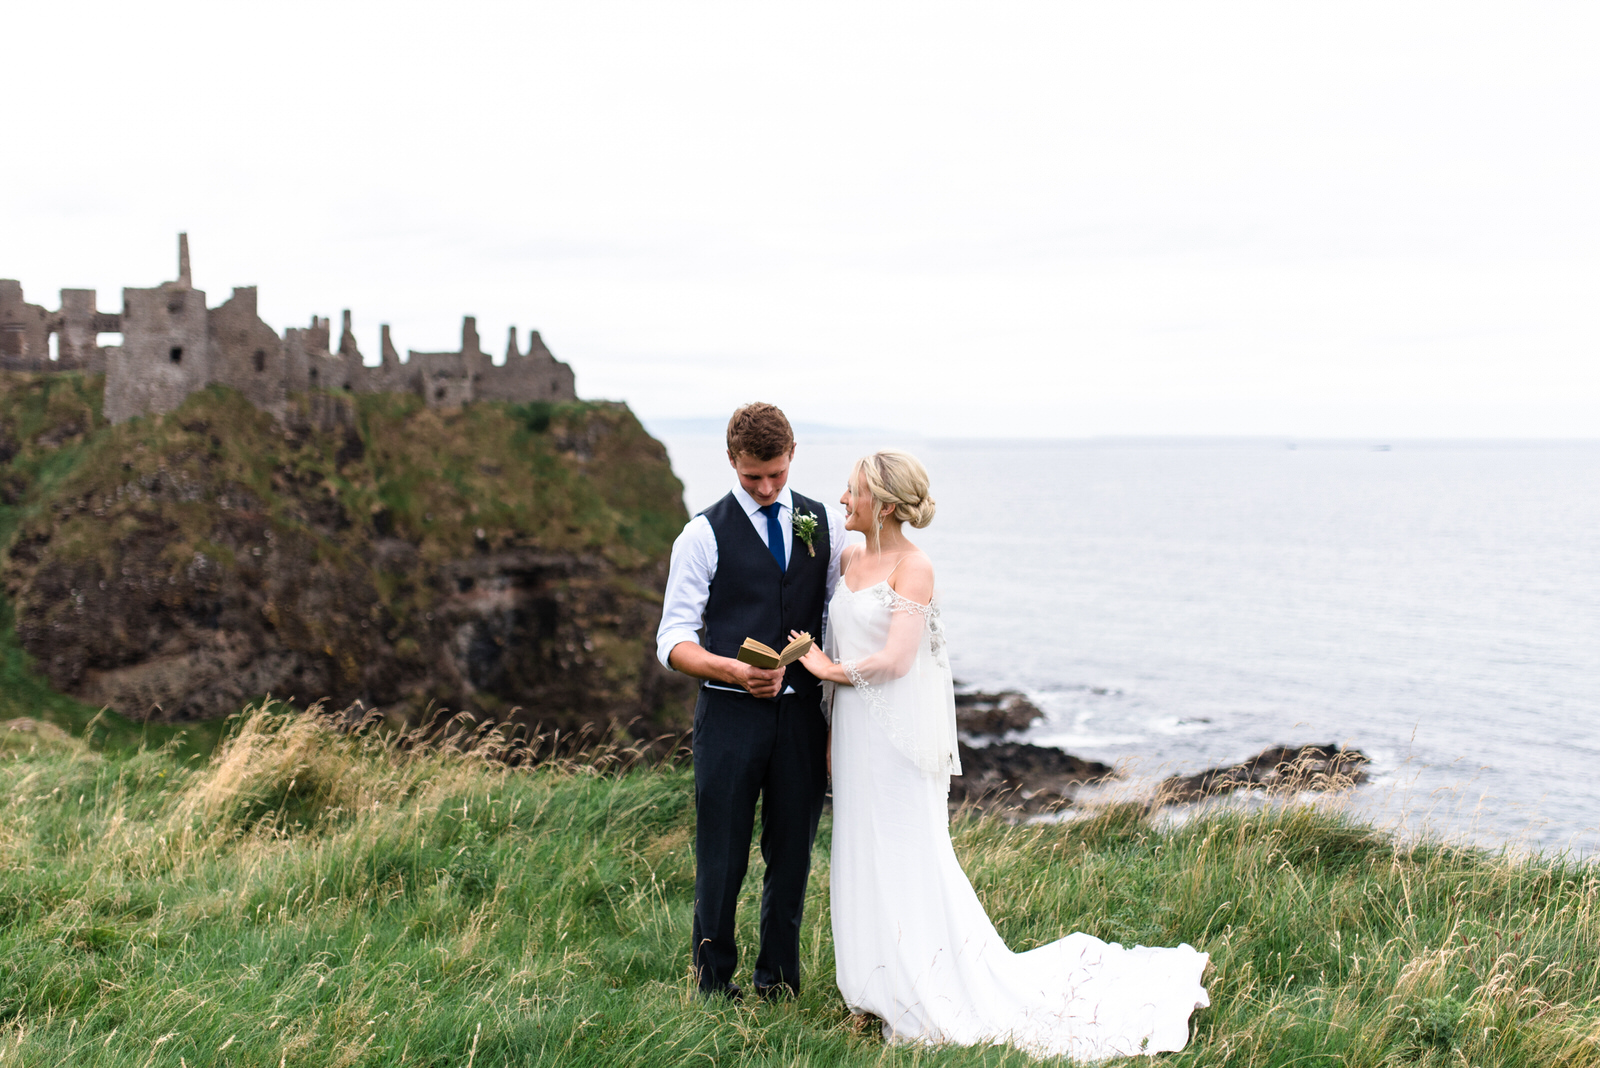 fine art dunluce castle elopement in ireland in sage and white, vows reading on the cliff of northern ireland, wedding day-1.jpg